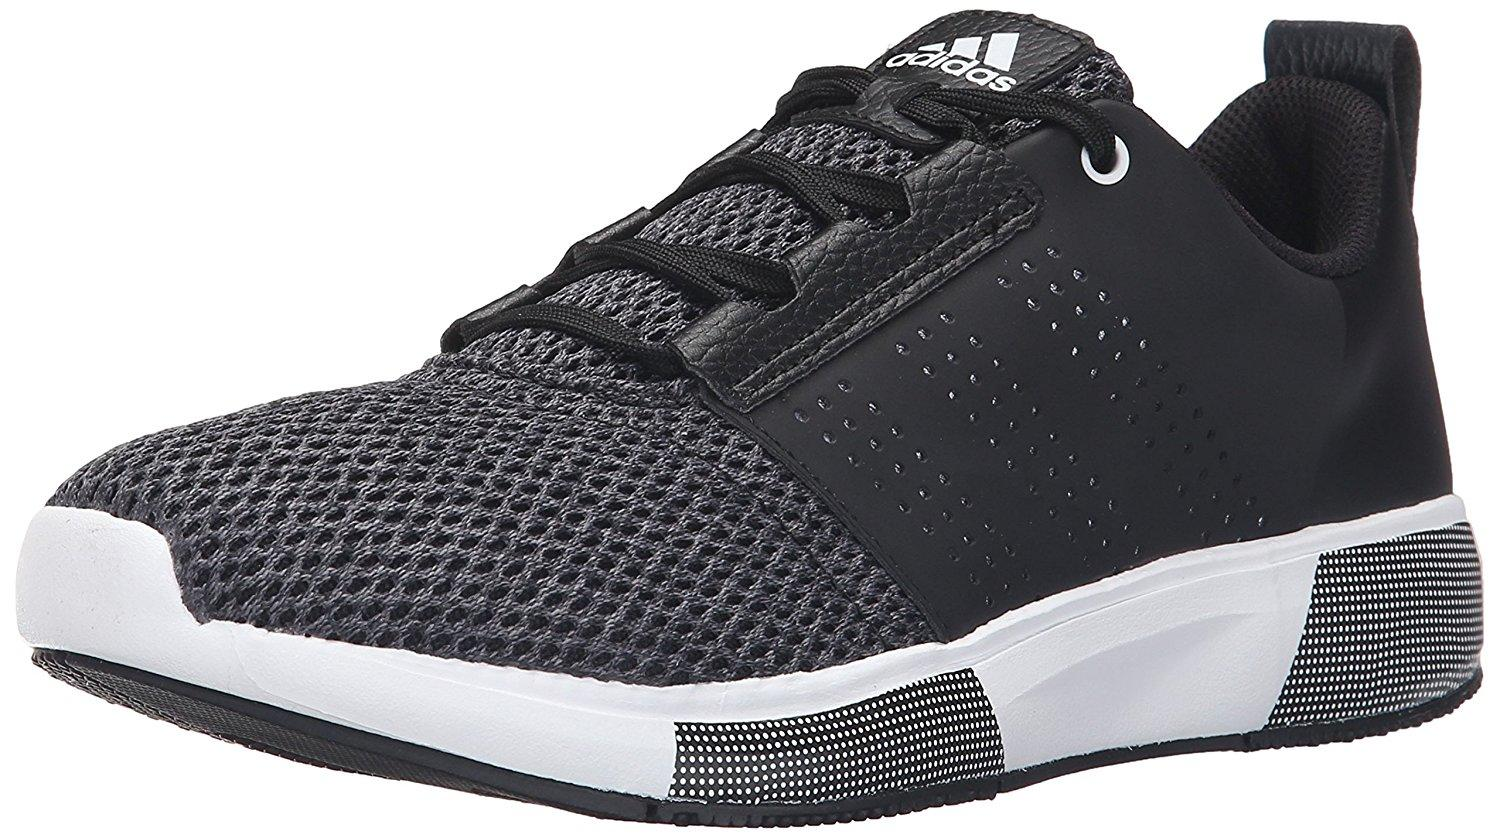 the Adidas Madoru 2 shown from the front/side